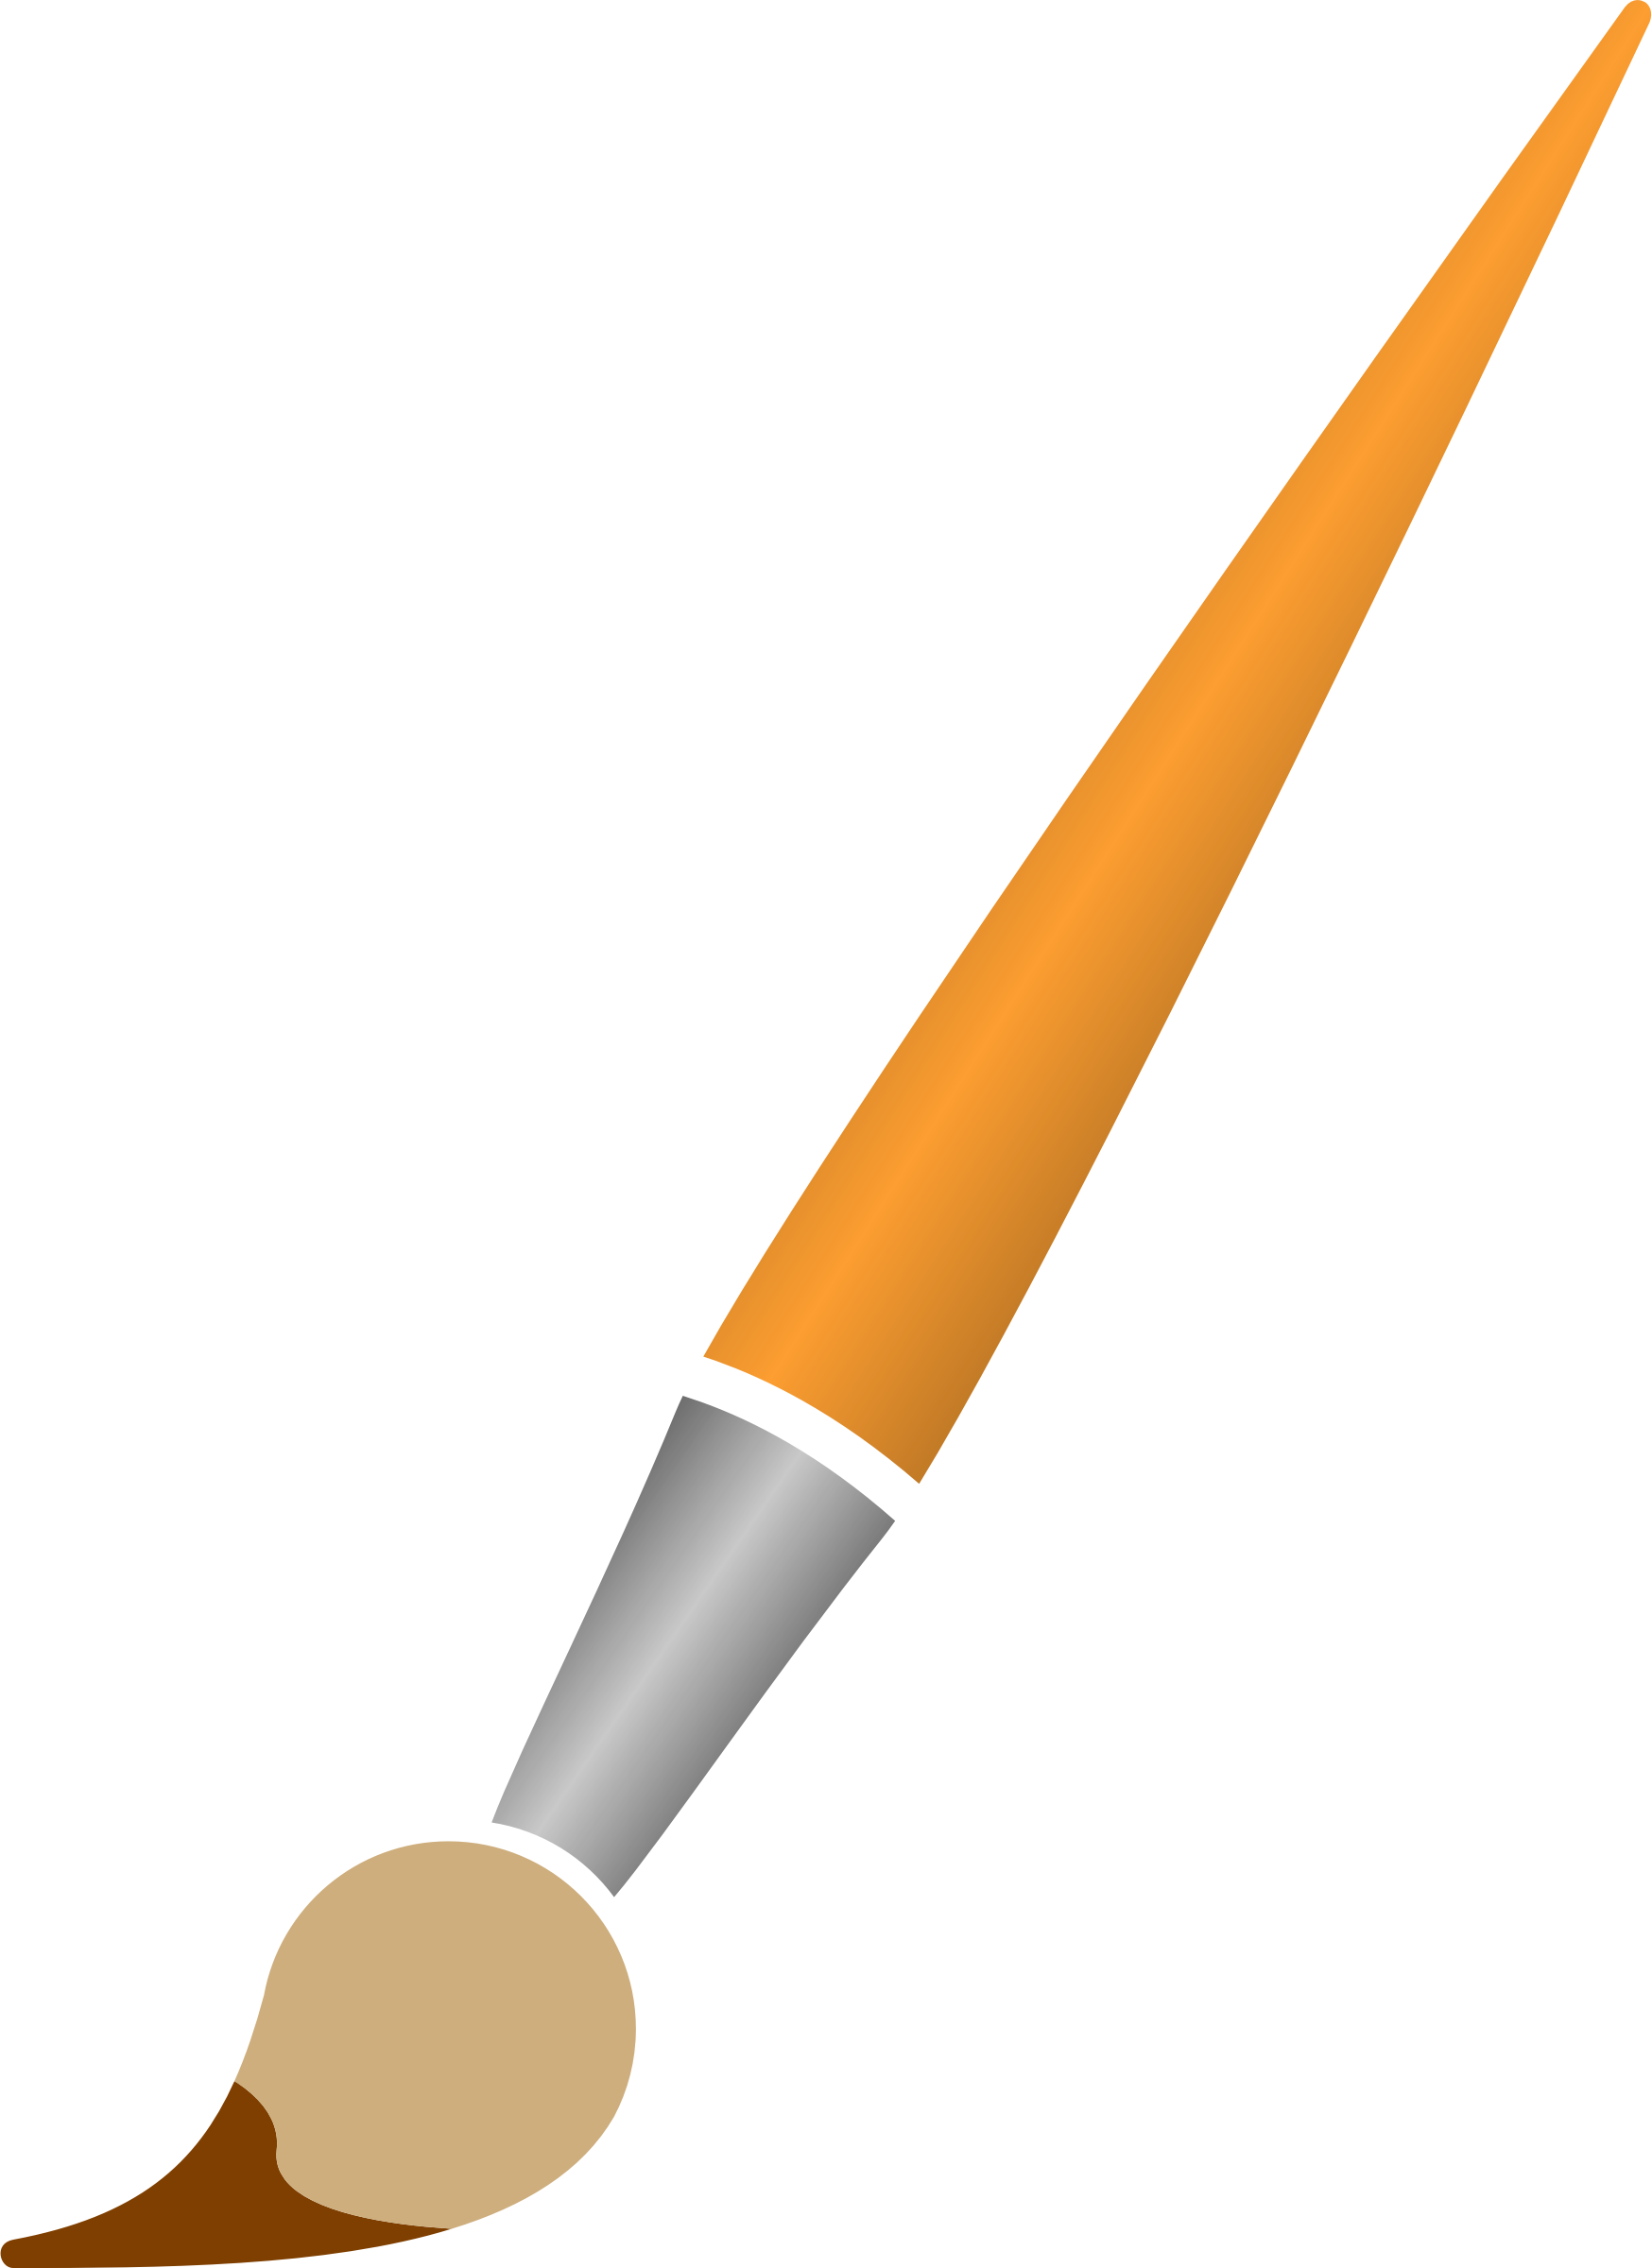 Paint Brush With Brown Dye - Paint Brush, Transparent background PNG HD thumbnail